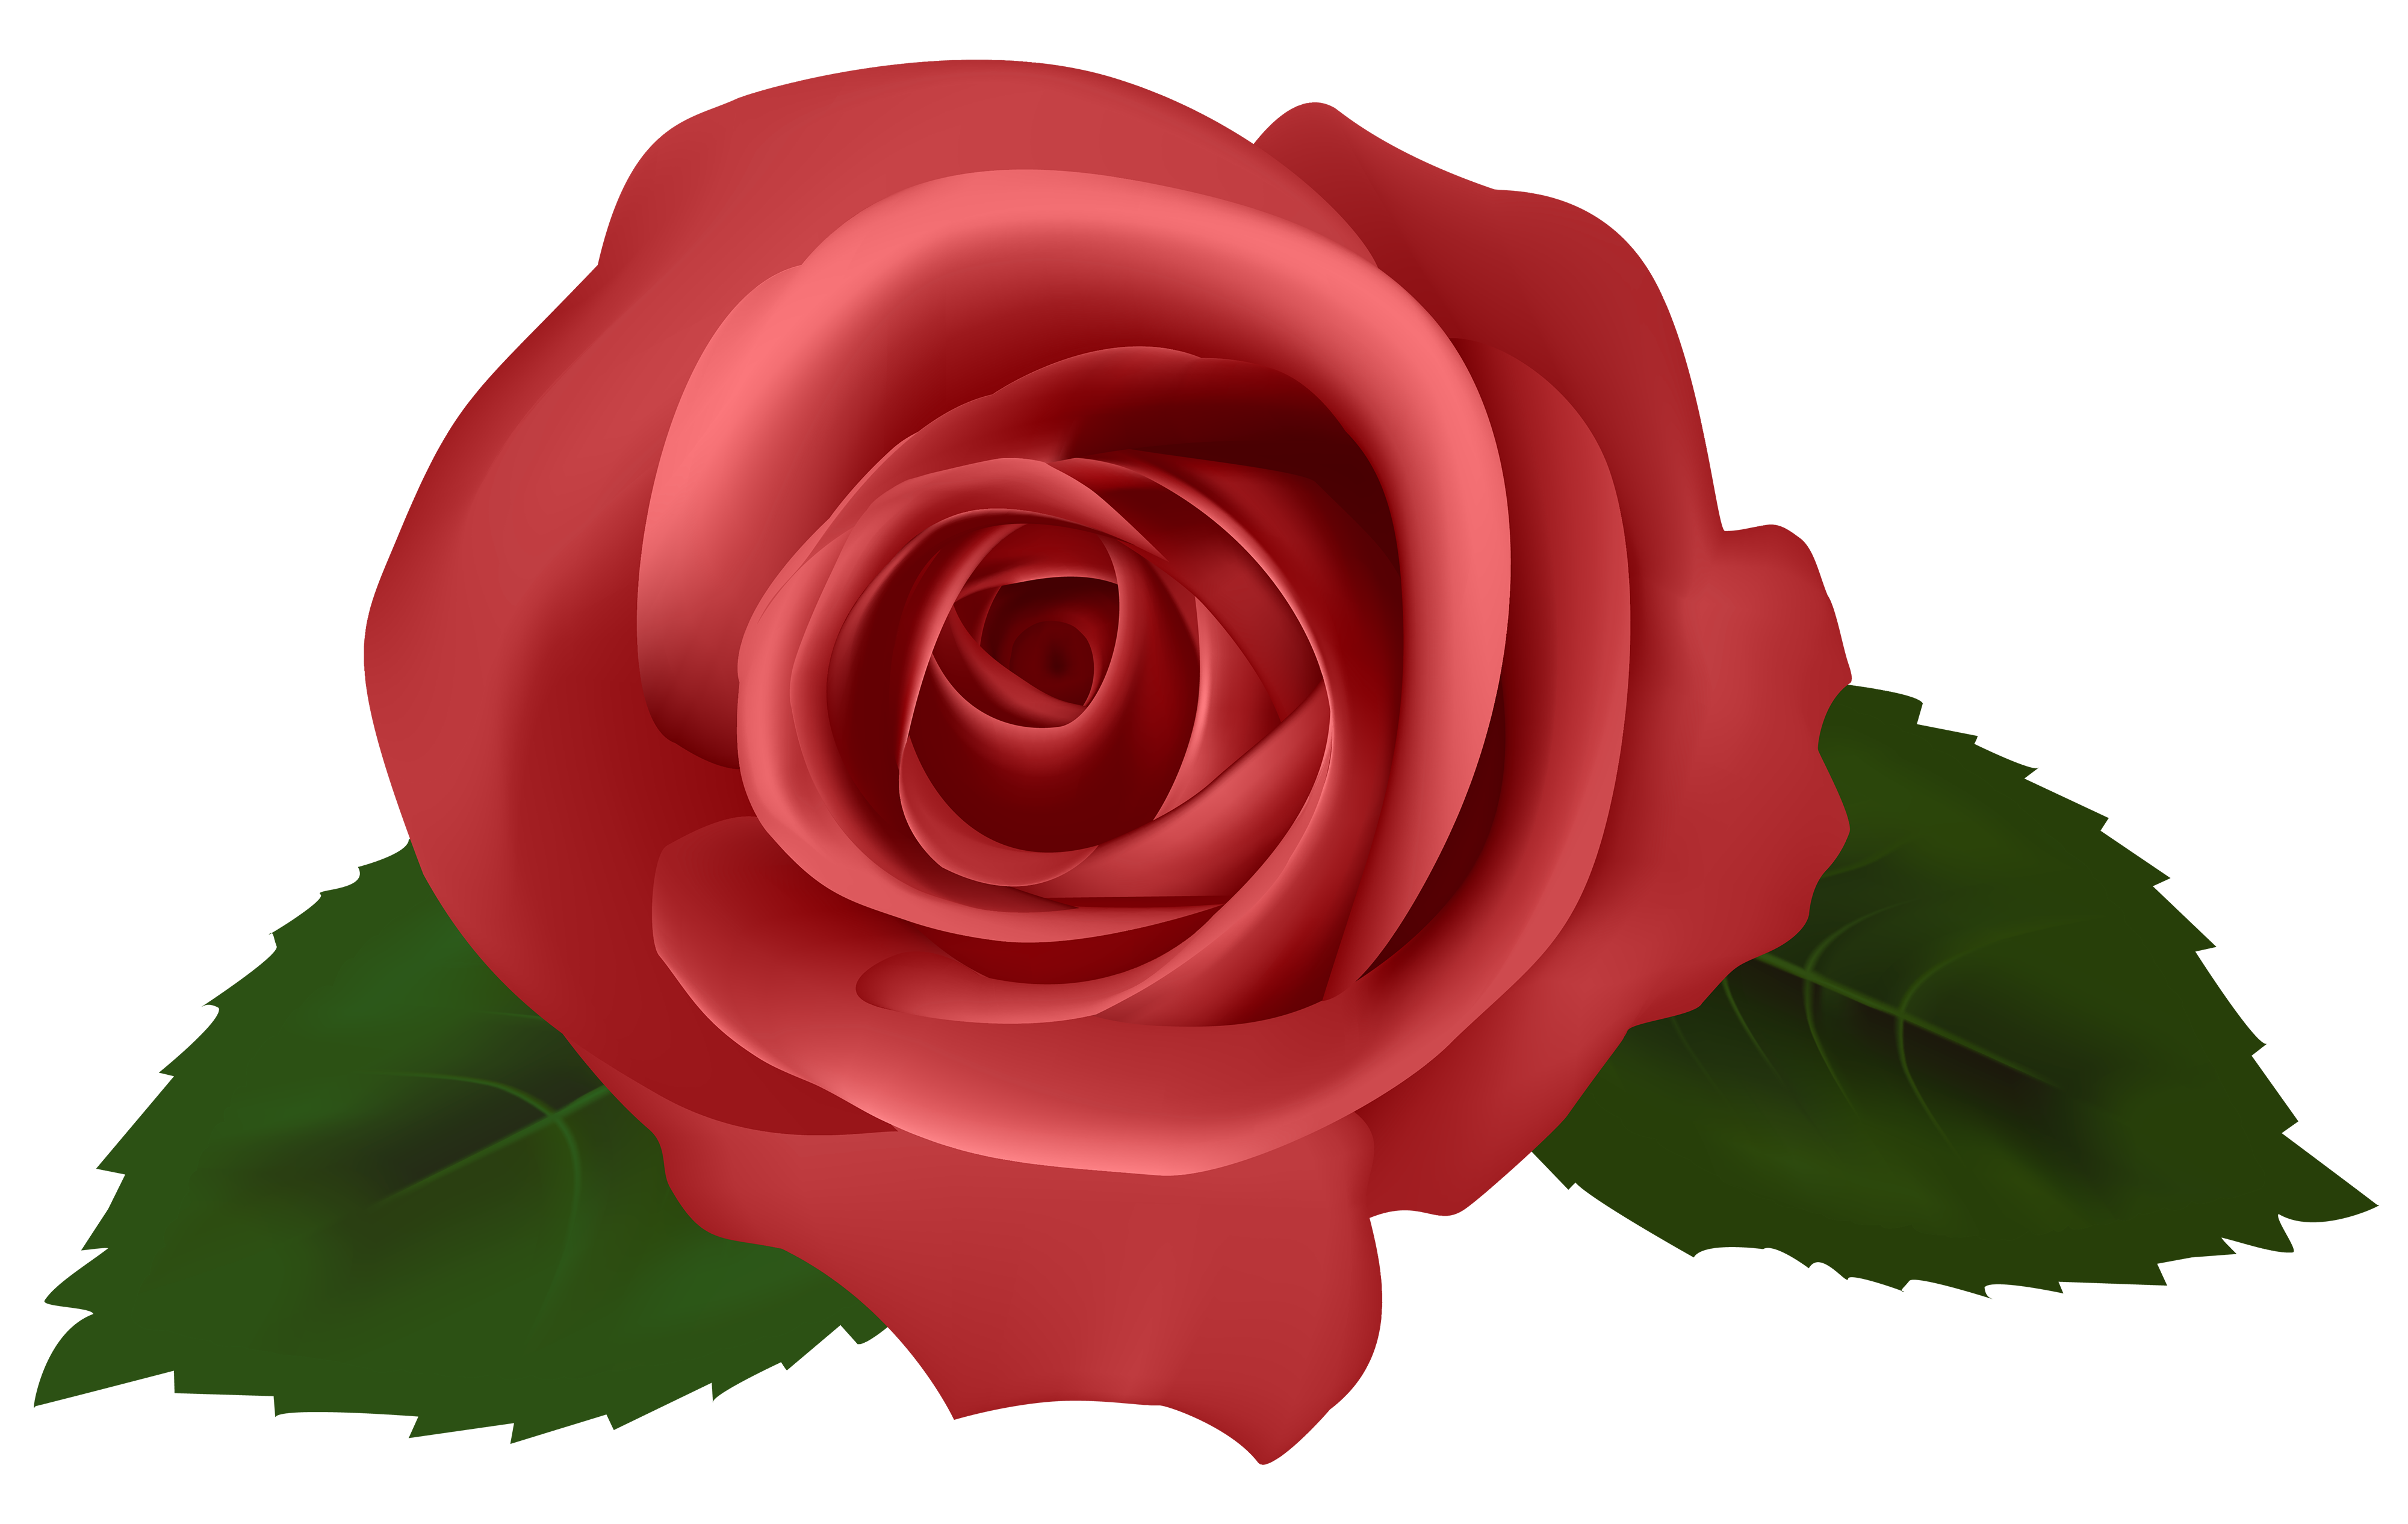 Rose red png best. Clipart roses knife